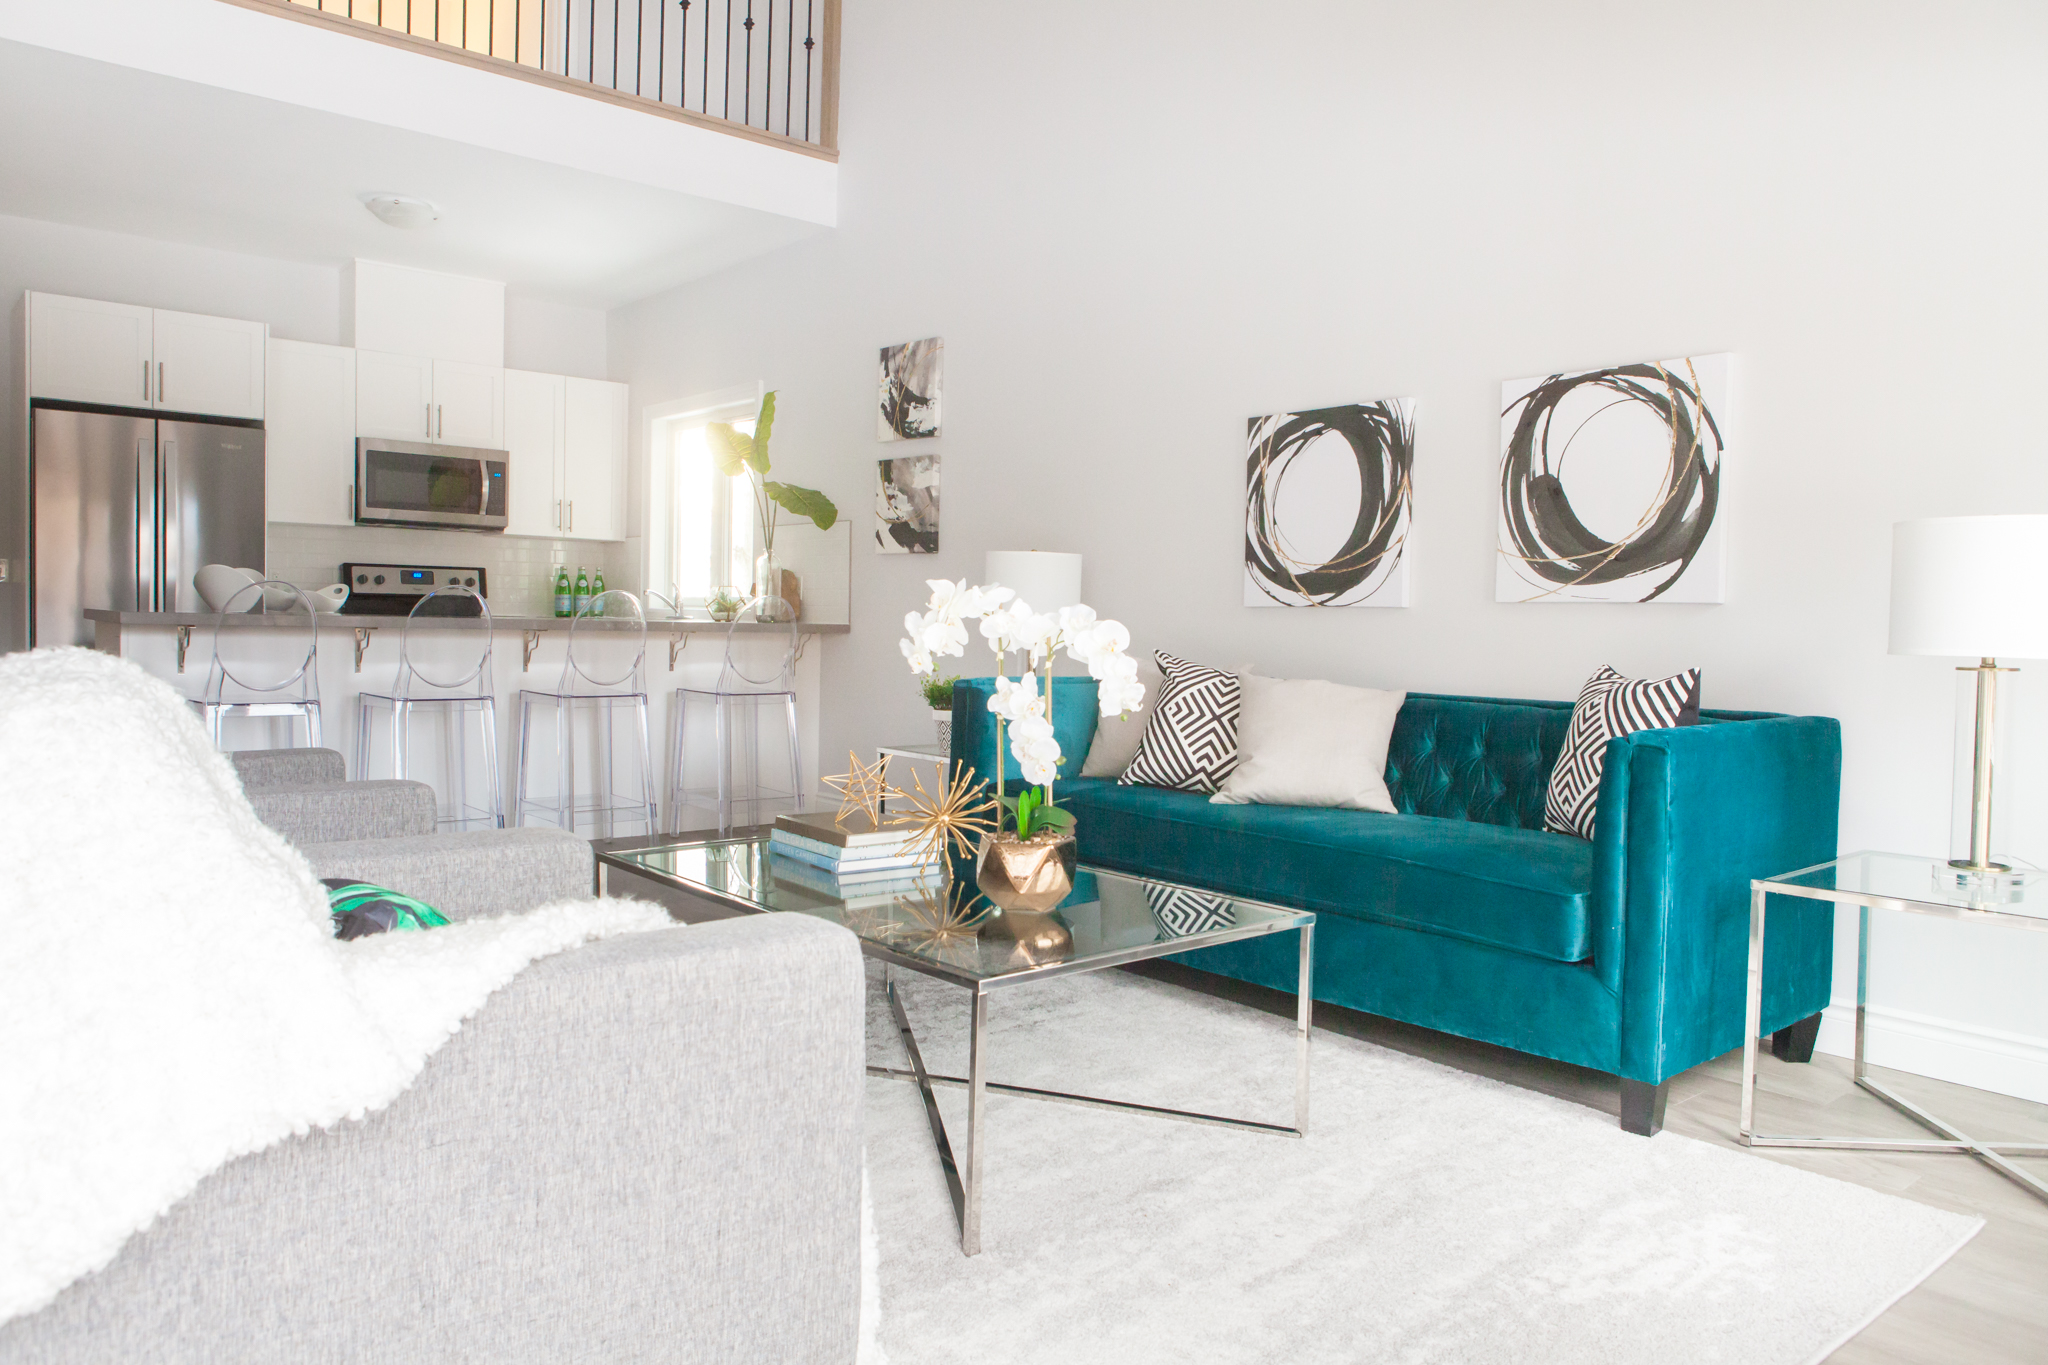 Barrie Home Staging provided by New Leaf Decor creating luxury living room space with a Lux Emerald green sofa